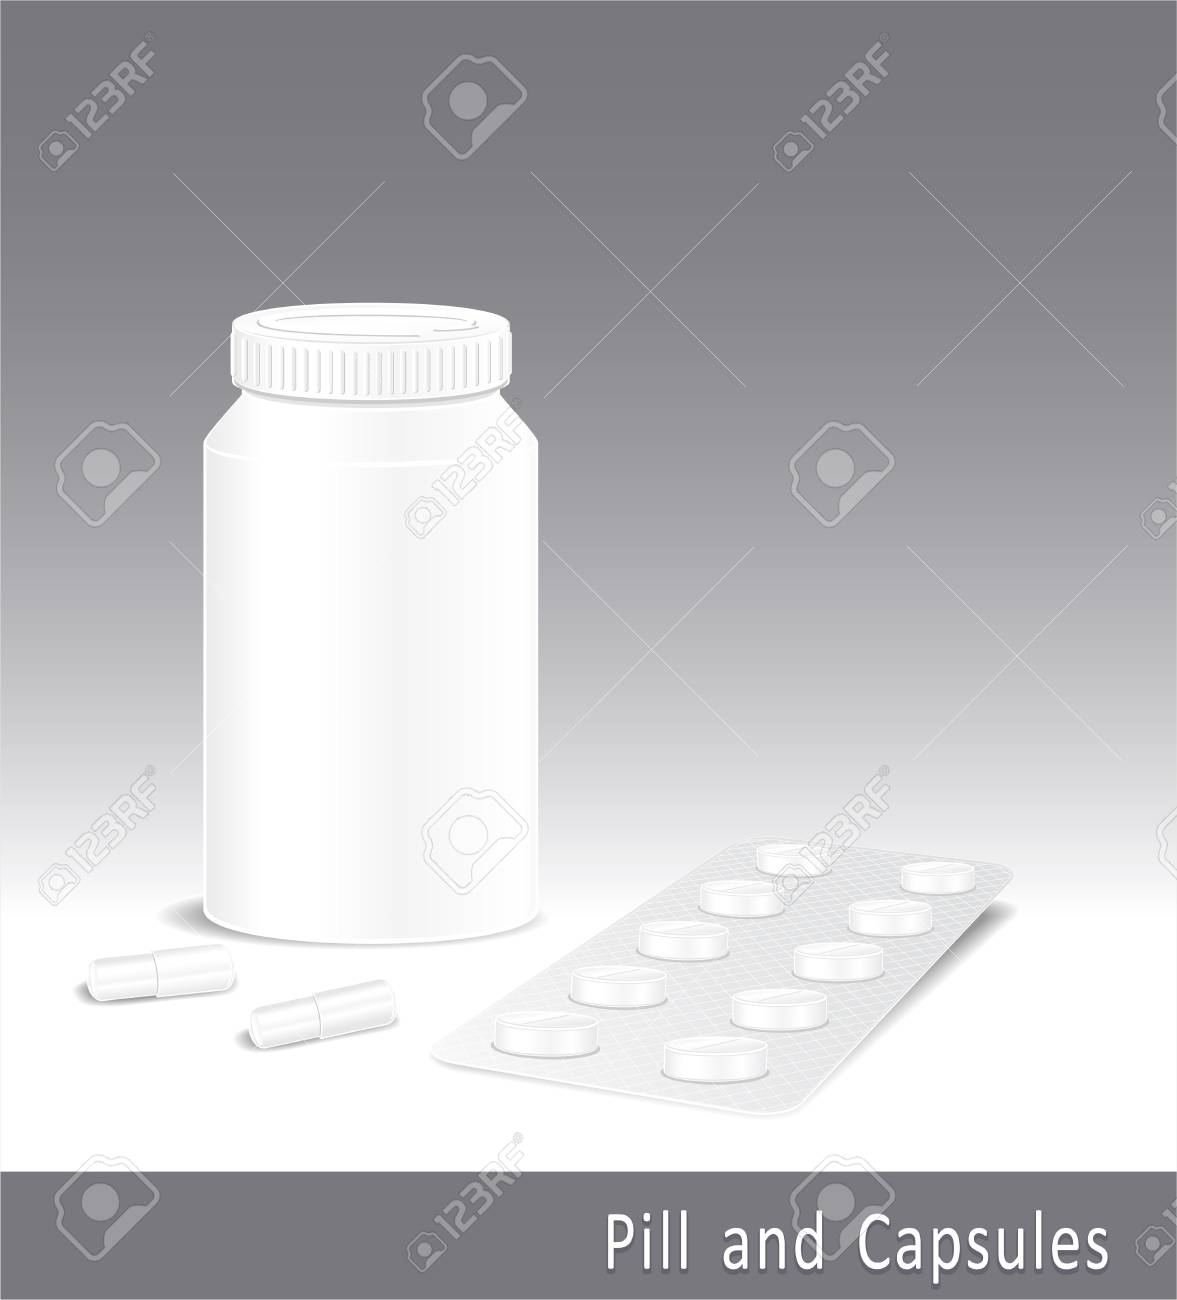 Template for pharmaceuticals and pharmacy of pills capsules and bottle Stock Vector - 15887818